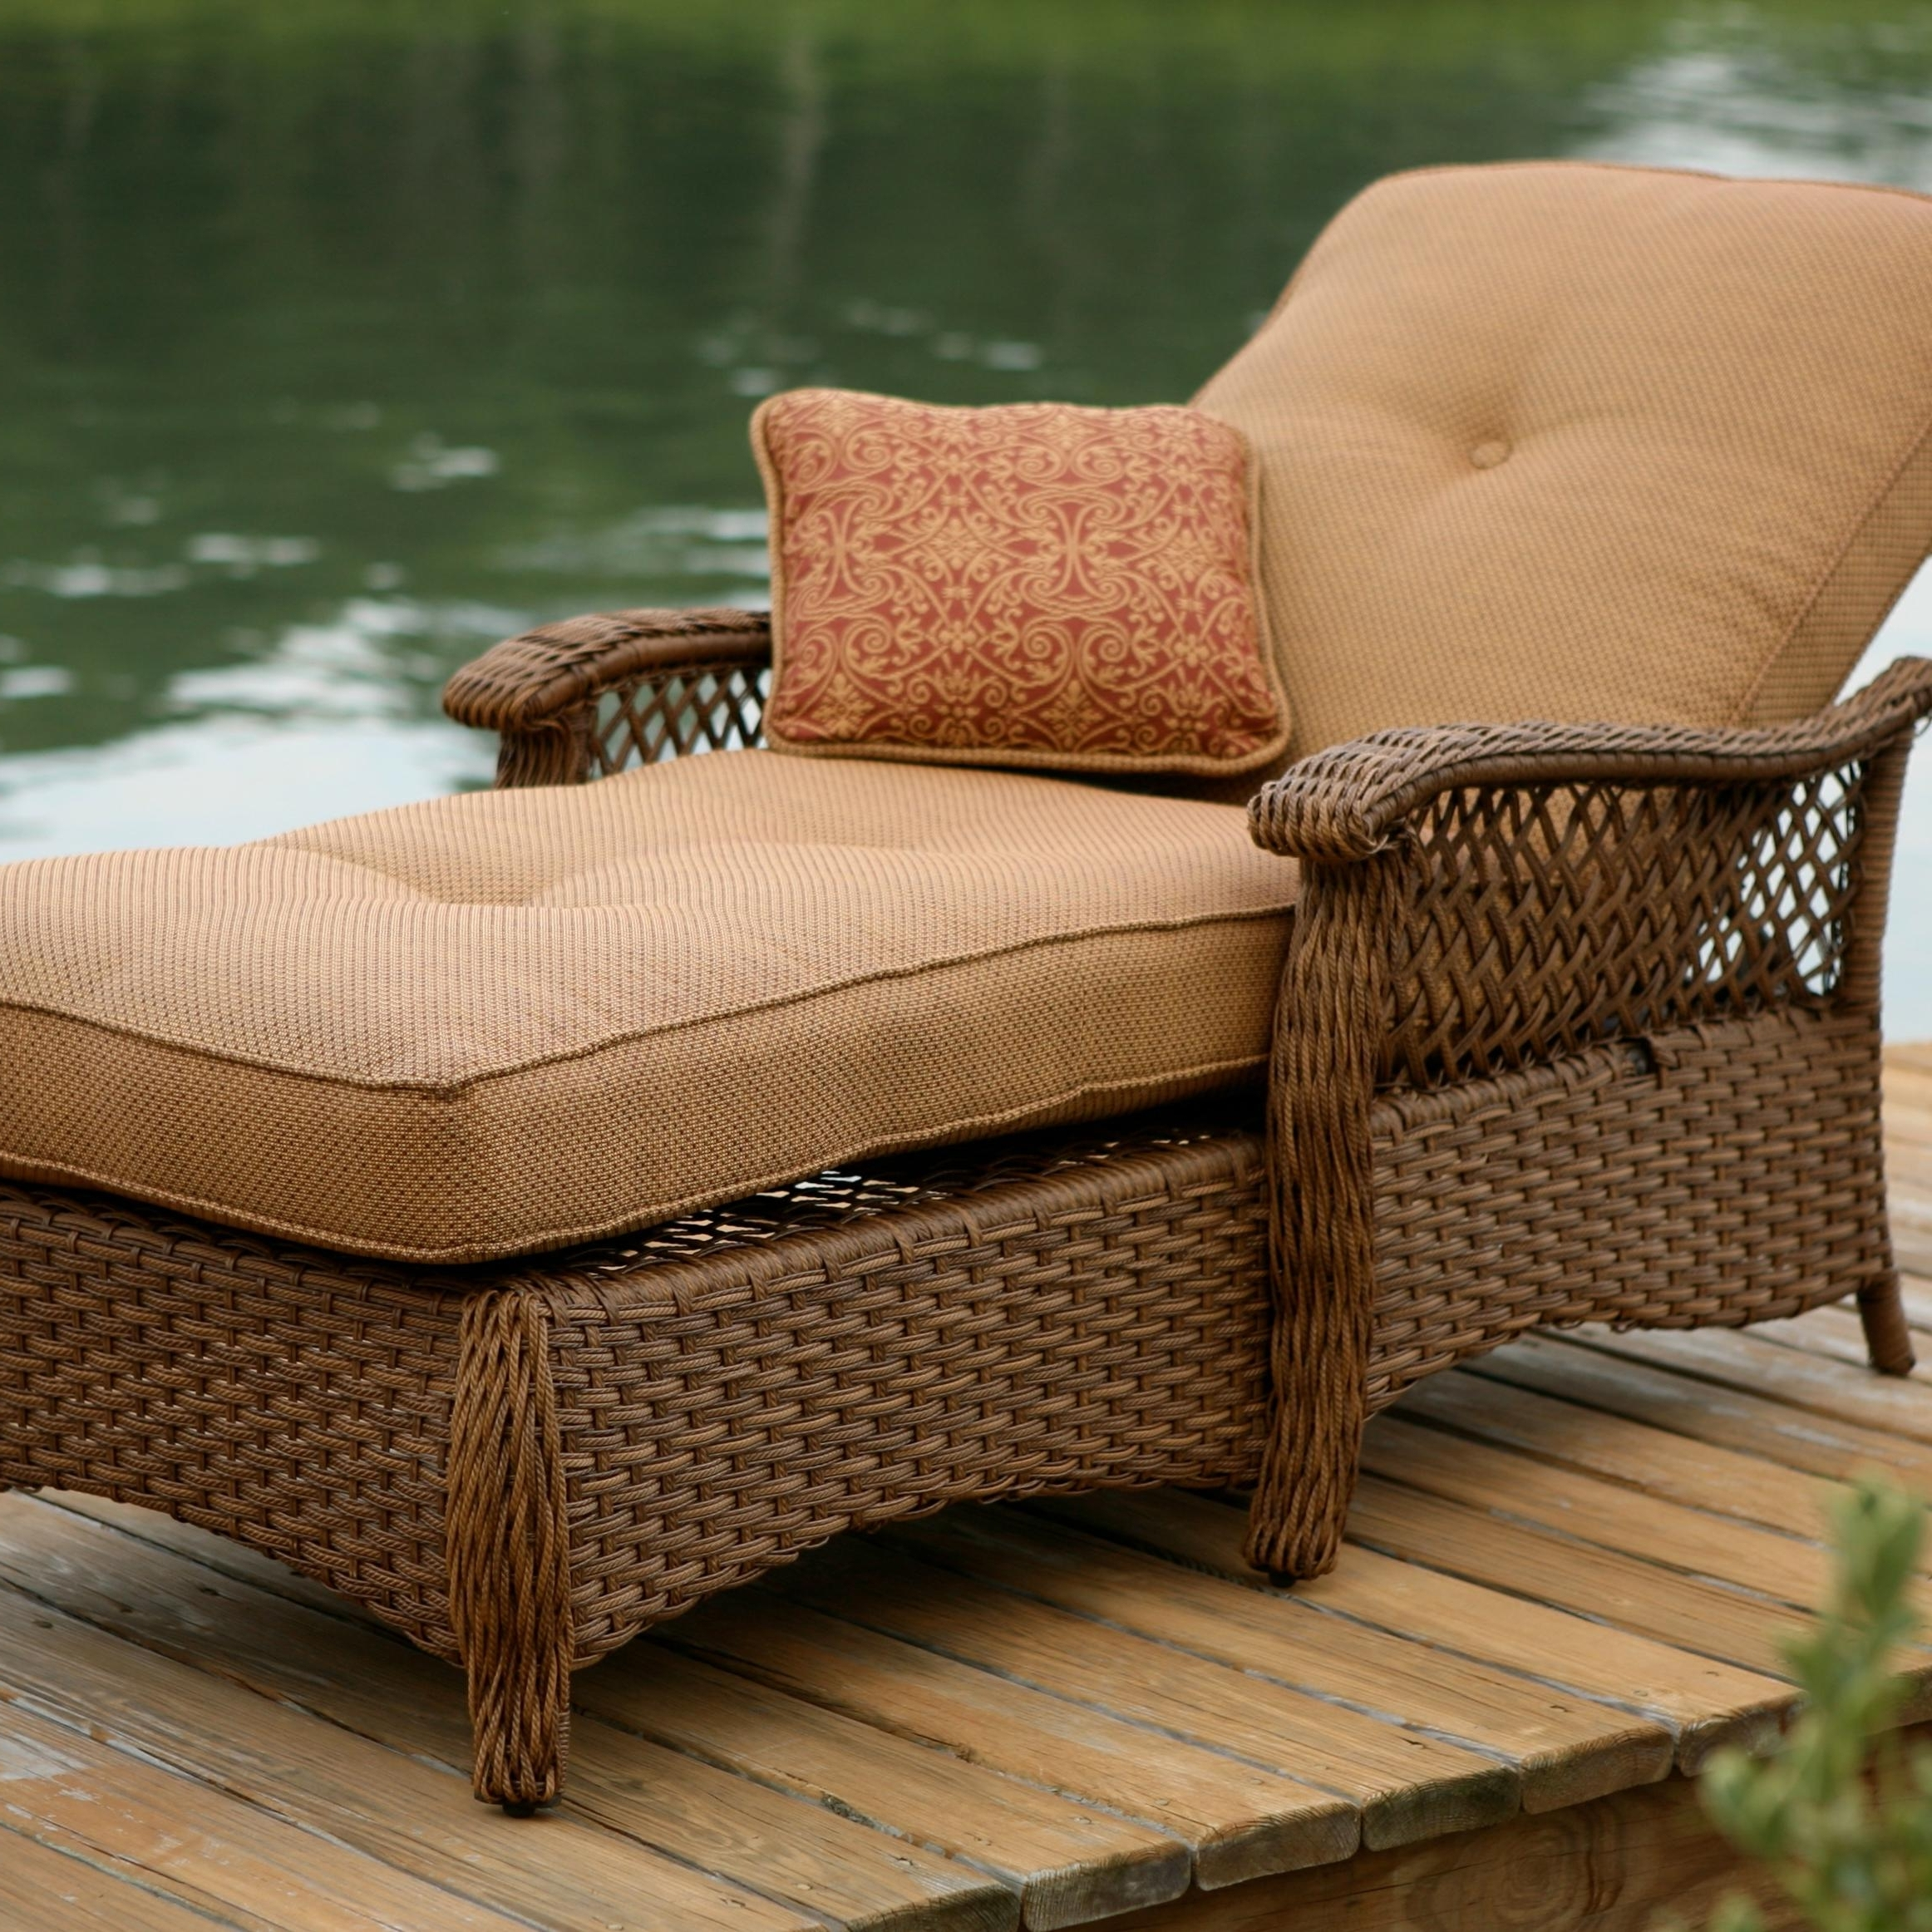 Wicker Chaise Lounge Chair • Lounge Chairs Ideas Regarding Preferred Wicker Chaise Lounges (View 11 of 15)